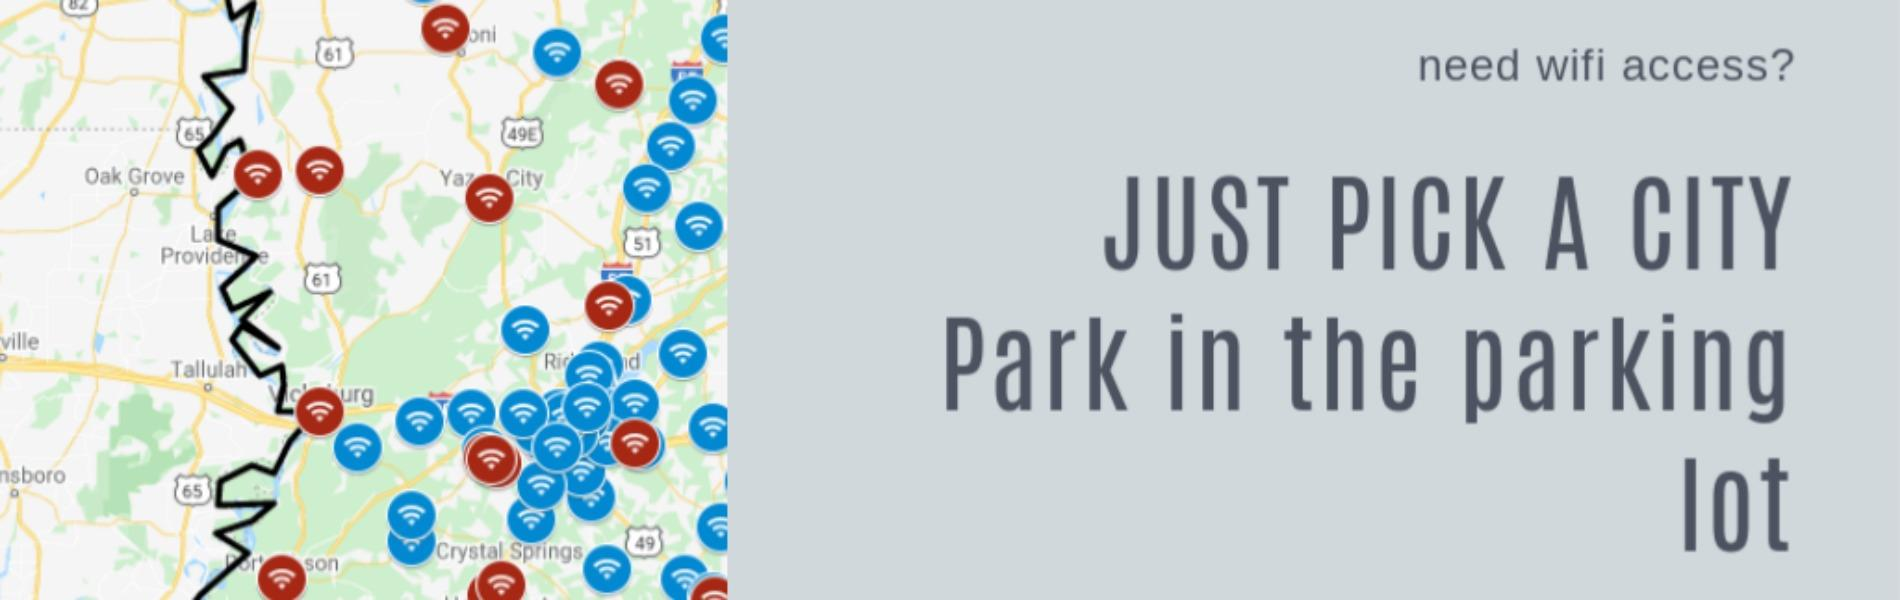 Click here to access the map for Parking Lot Wifi Access